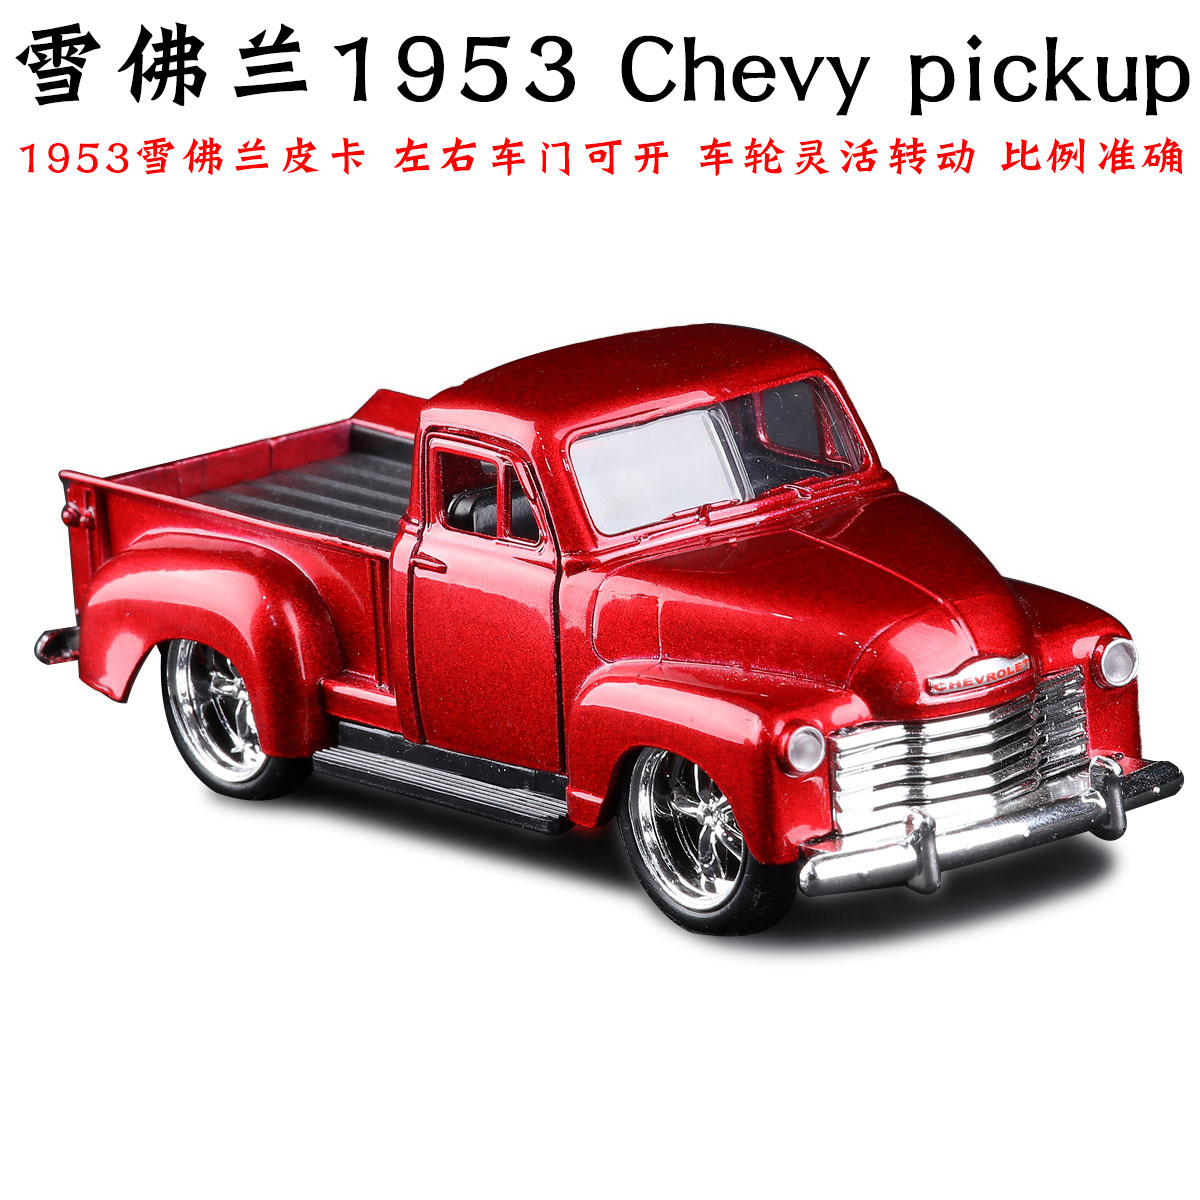 medium resolution of jada 1 32 scale high simulation alloy model car chevrolet chevy 1953 pickup quality toy models free shipping